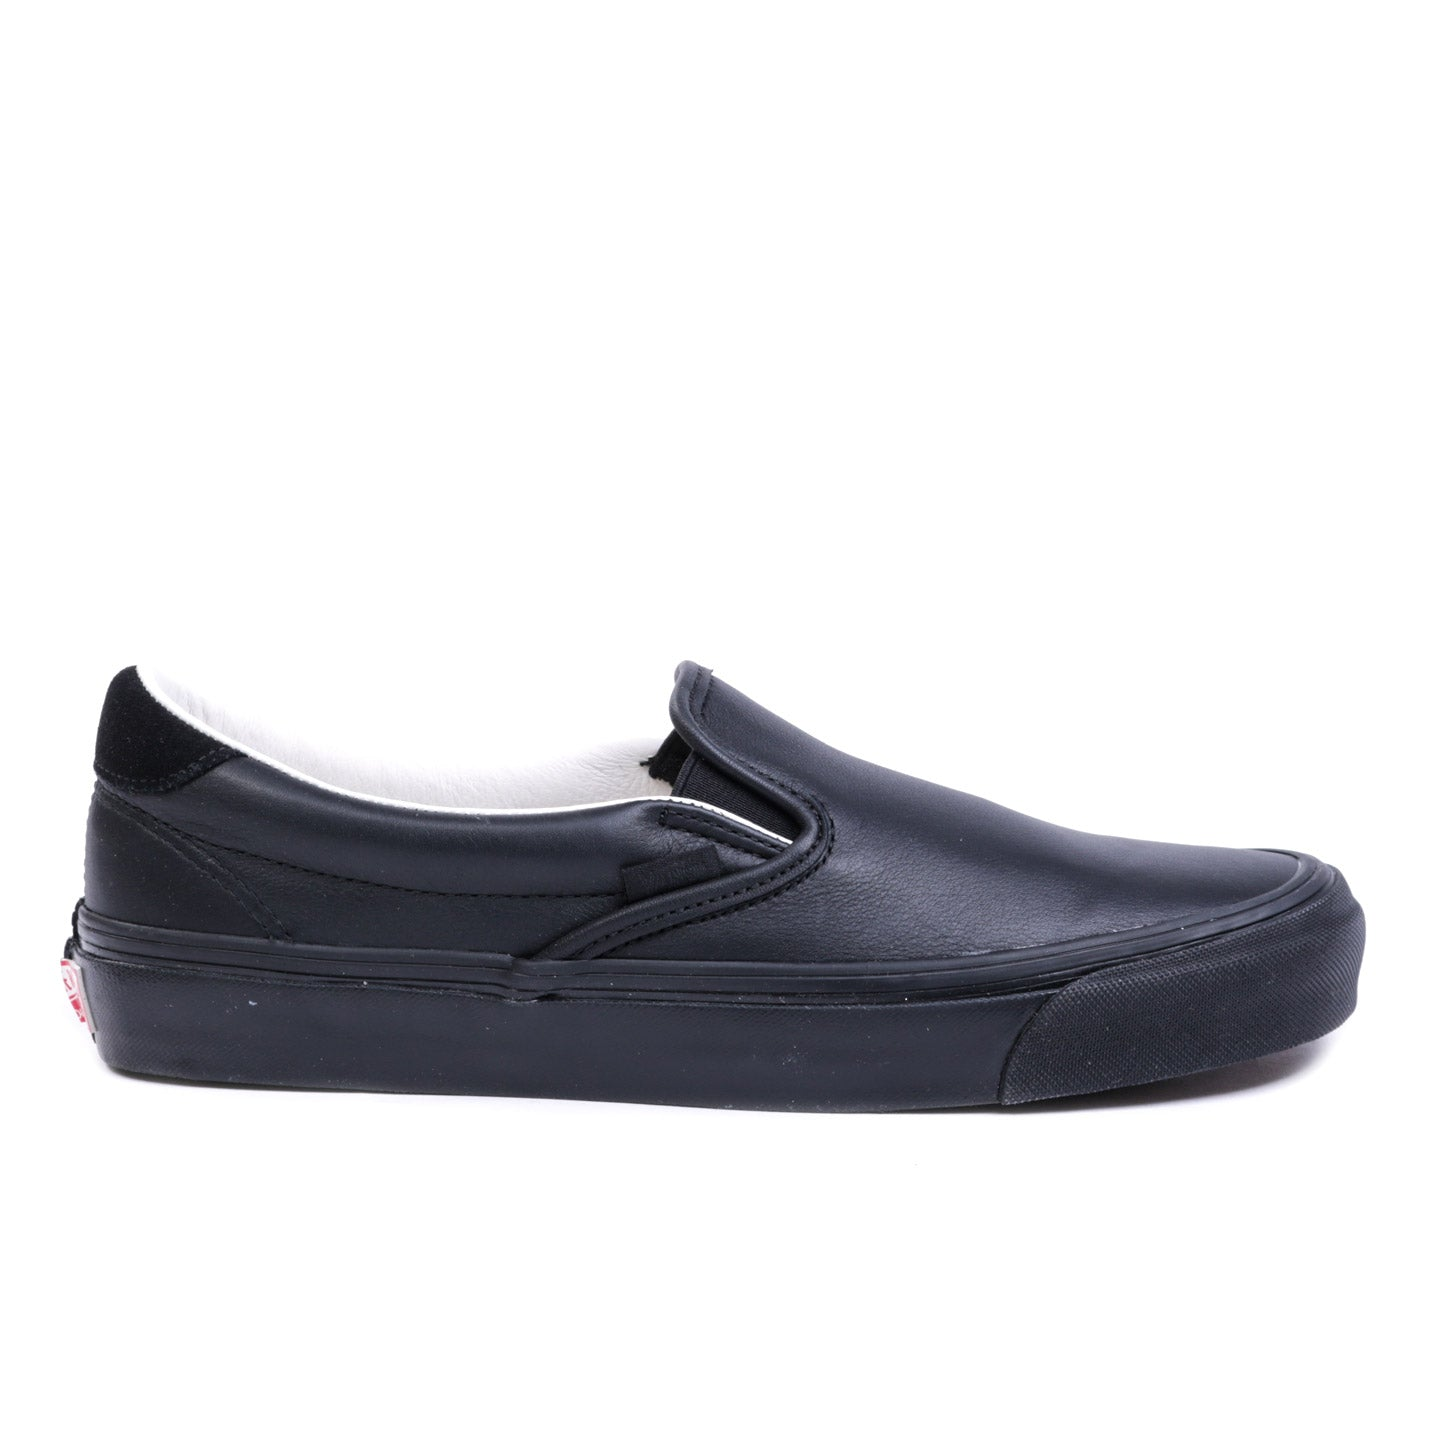 VAULT BY VANS OG SLIP-ON 59 LX BLACK / BLACK